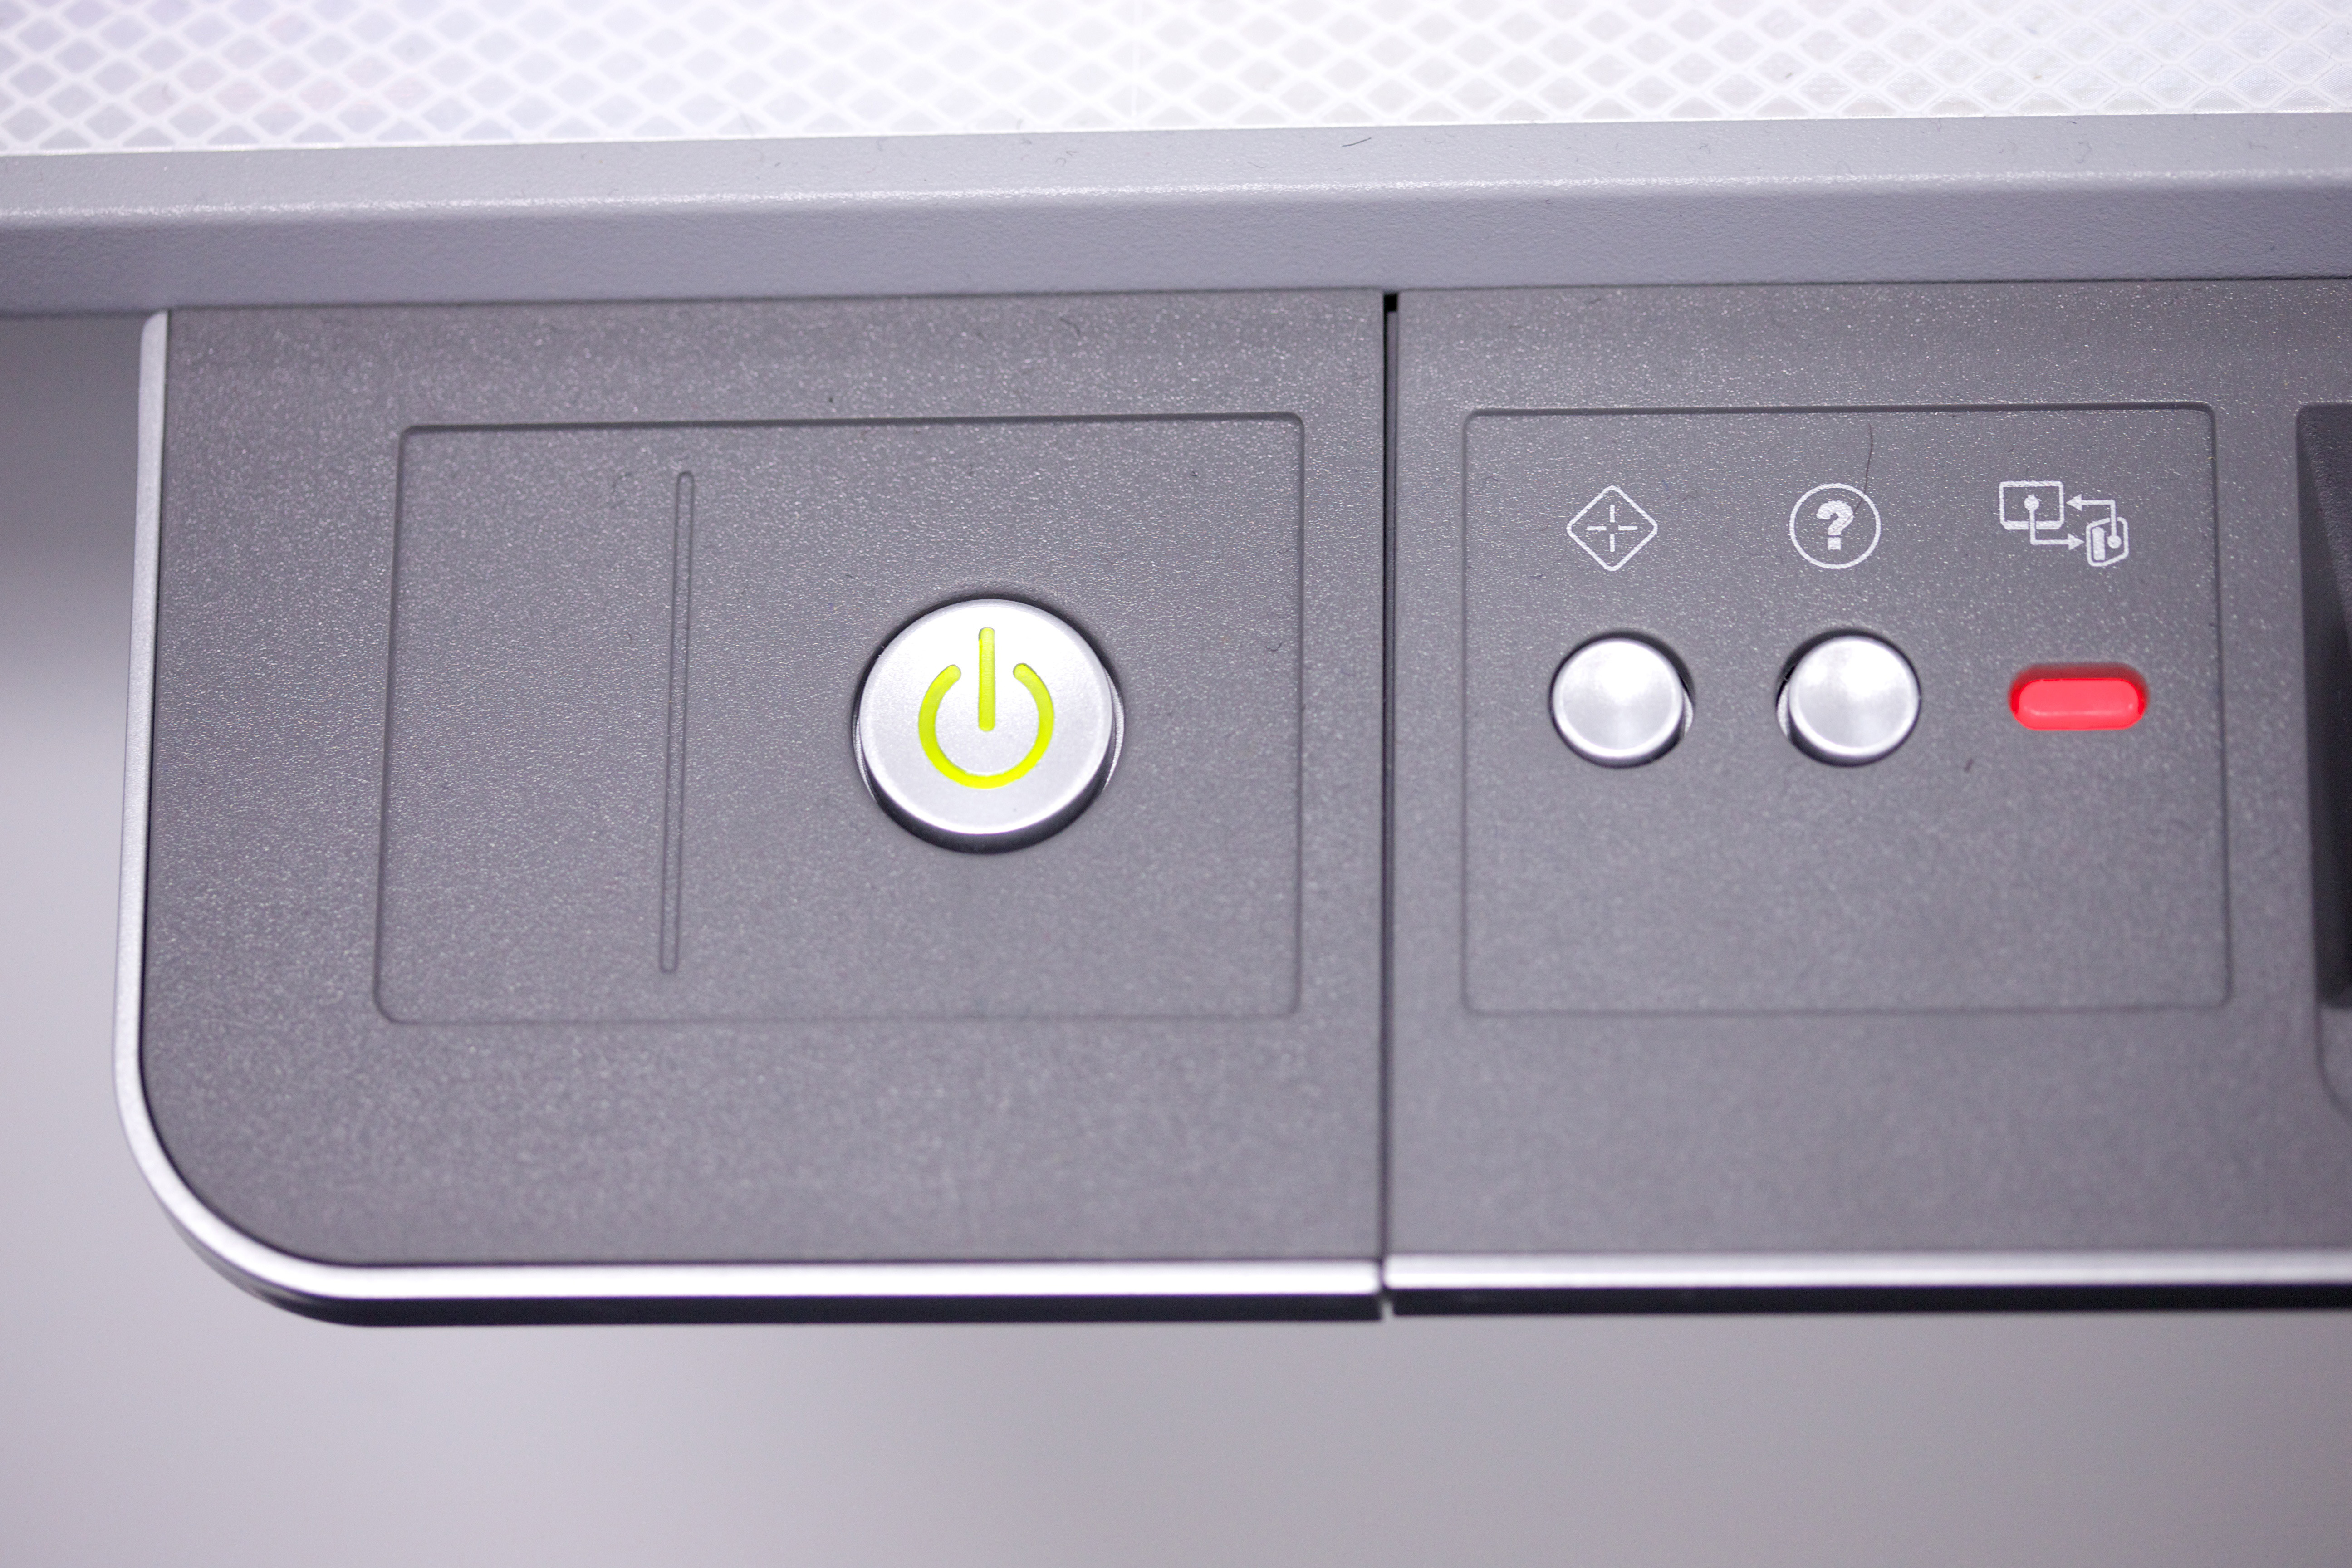 Device power button